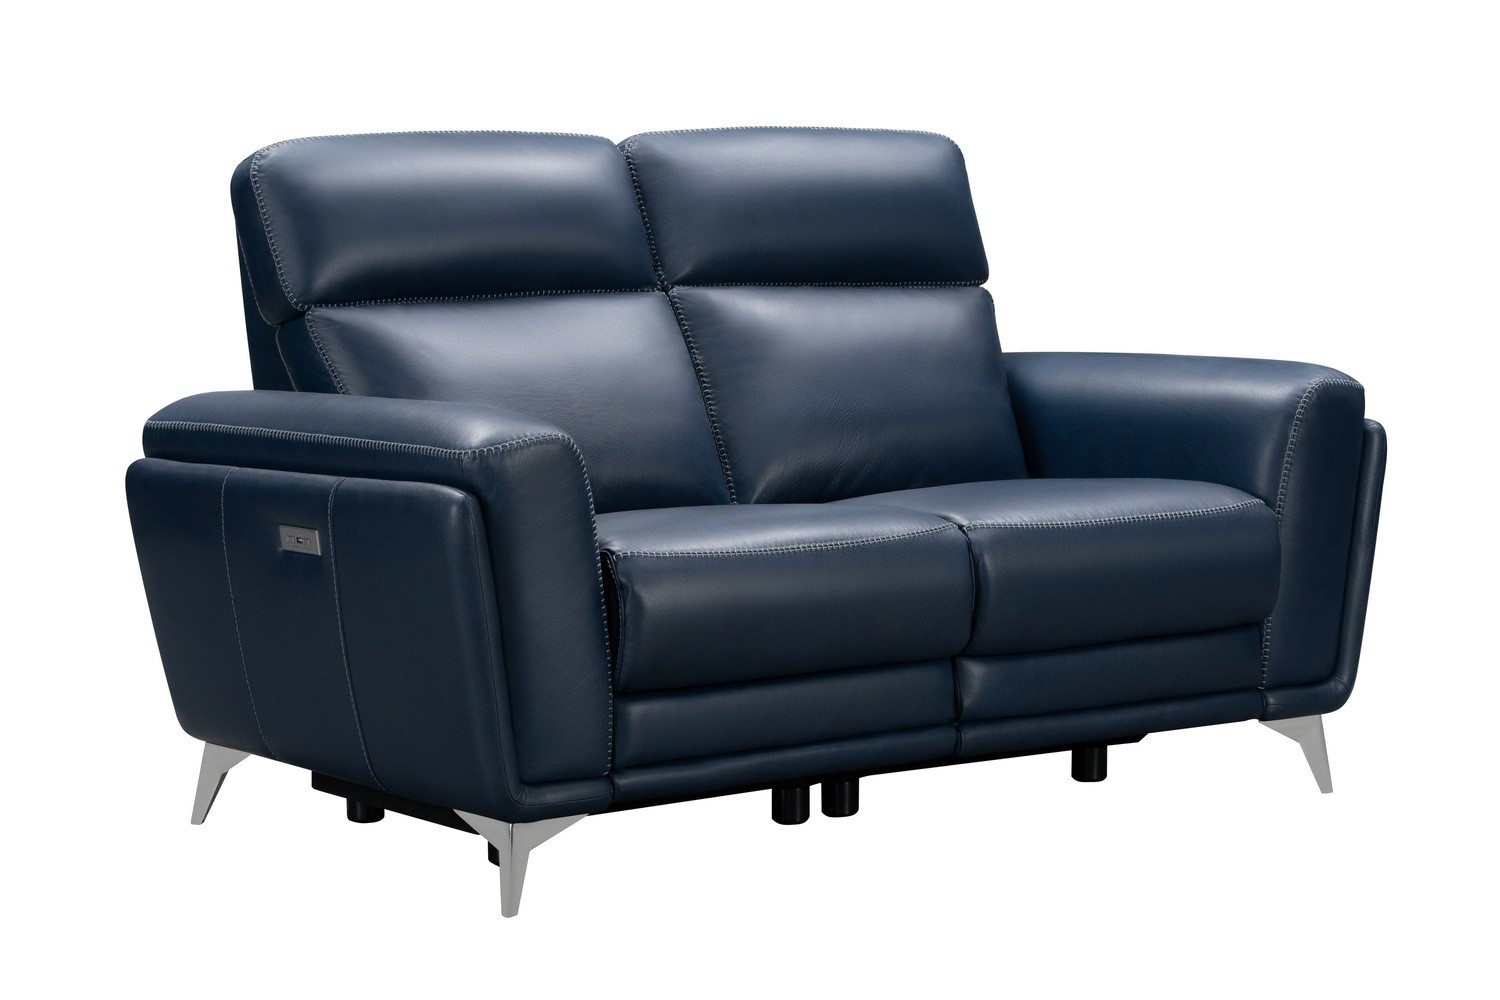 Barcalounger Cameron Power Reclining Loveseat With Power Inside Marco Leather Power Reclining Sofas (View 3 of 15)